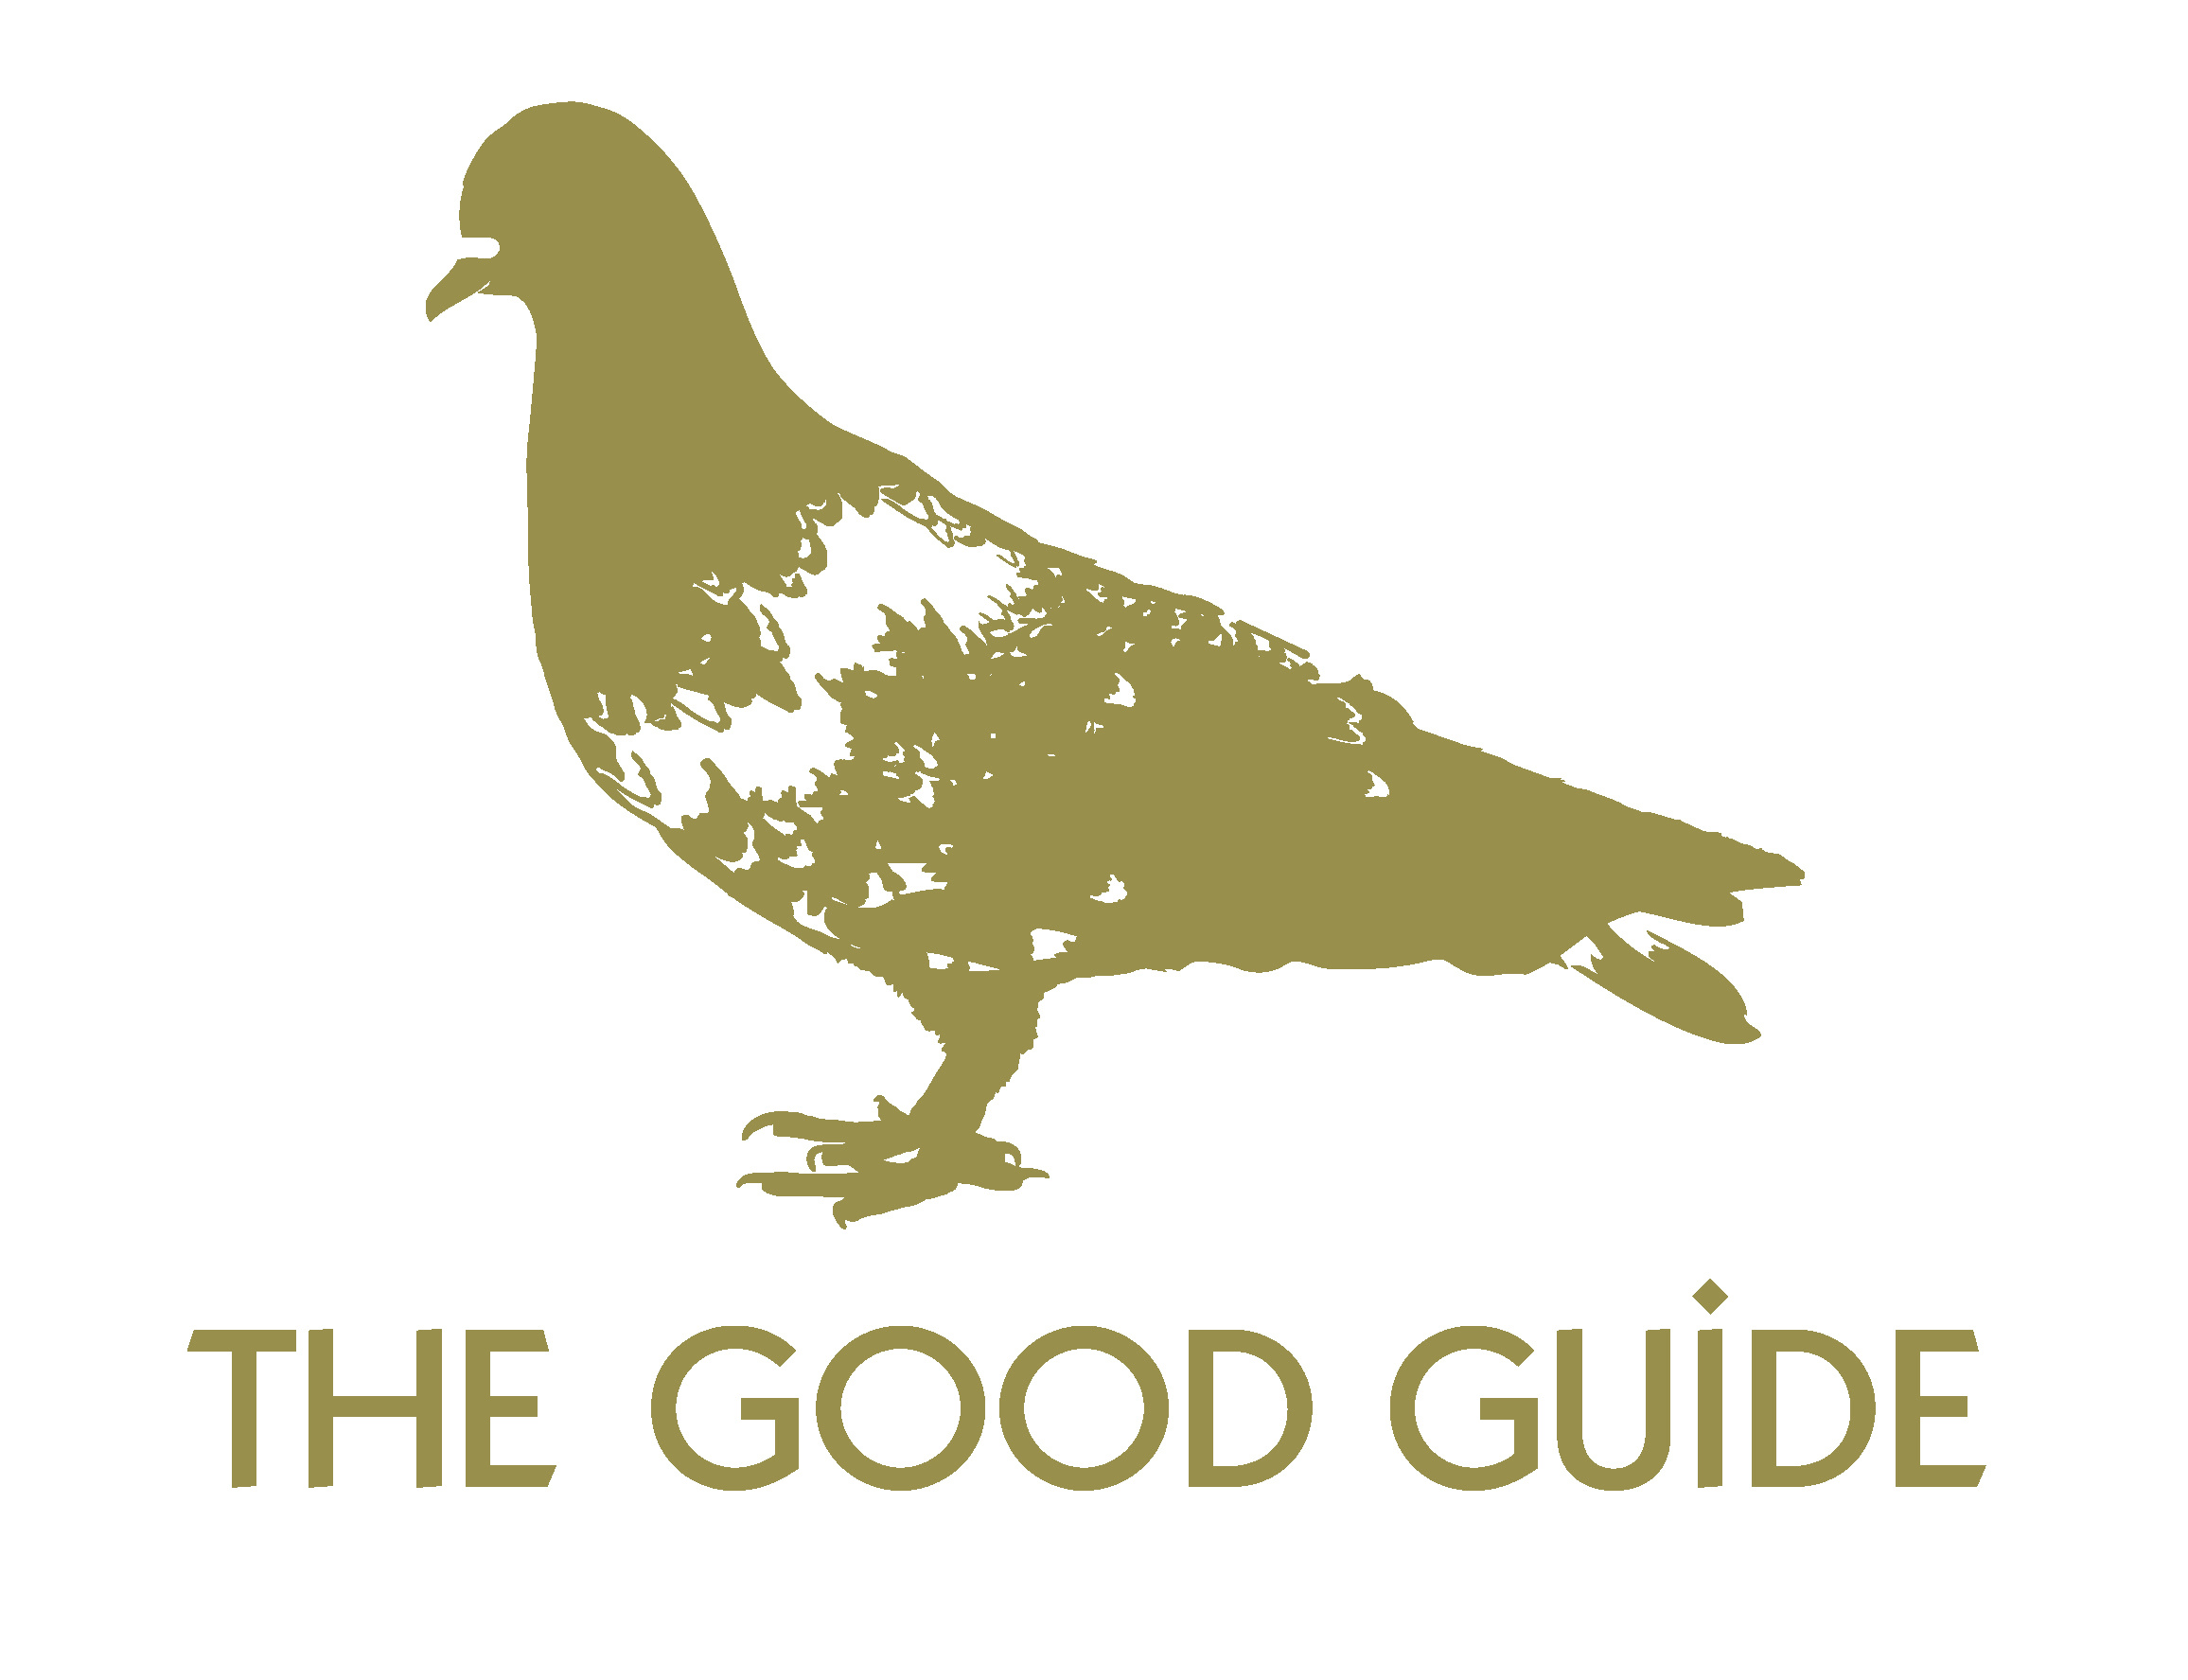 The Good Guide